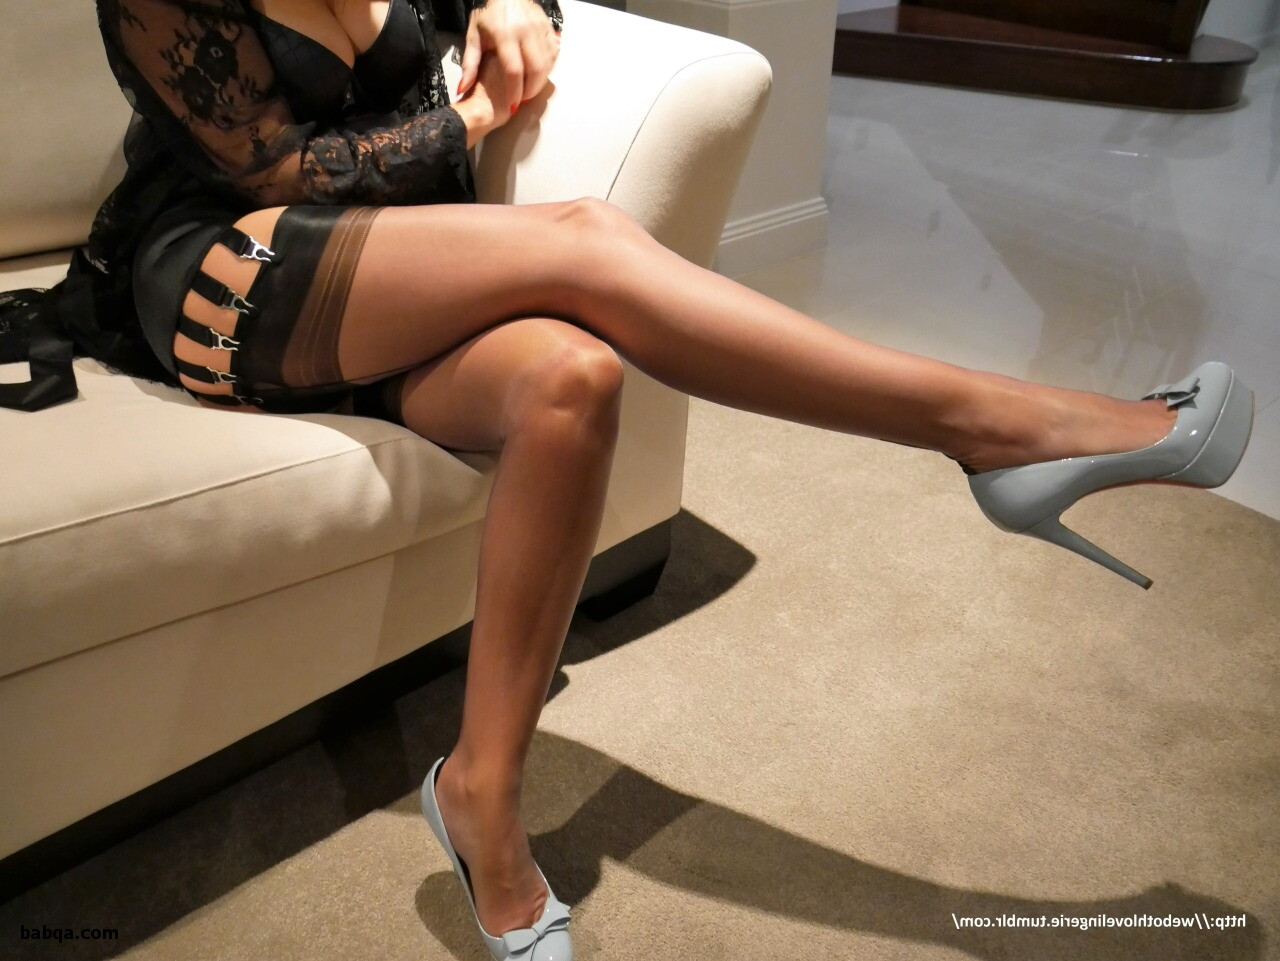 asian ladies in lingerie and amateurs stockings